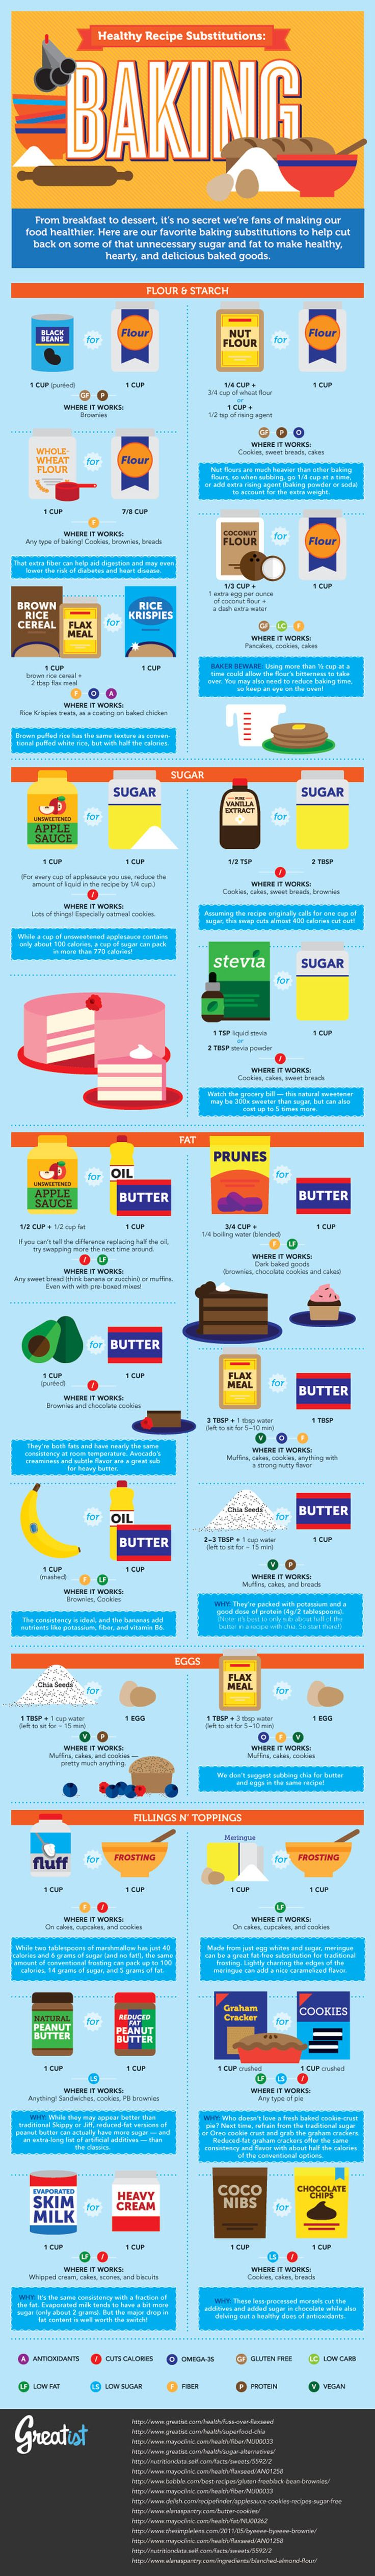 Healthy Baking Recipe Substitutions